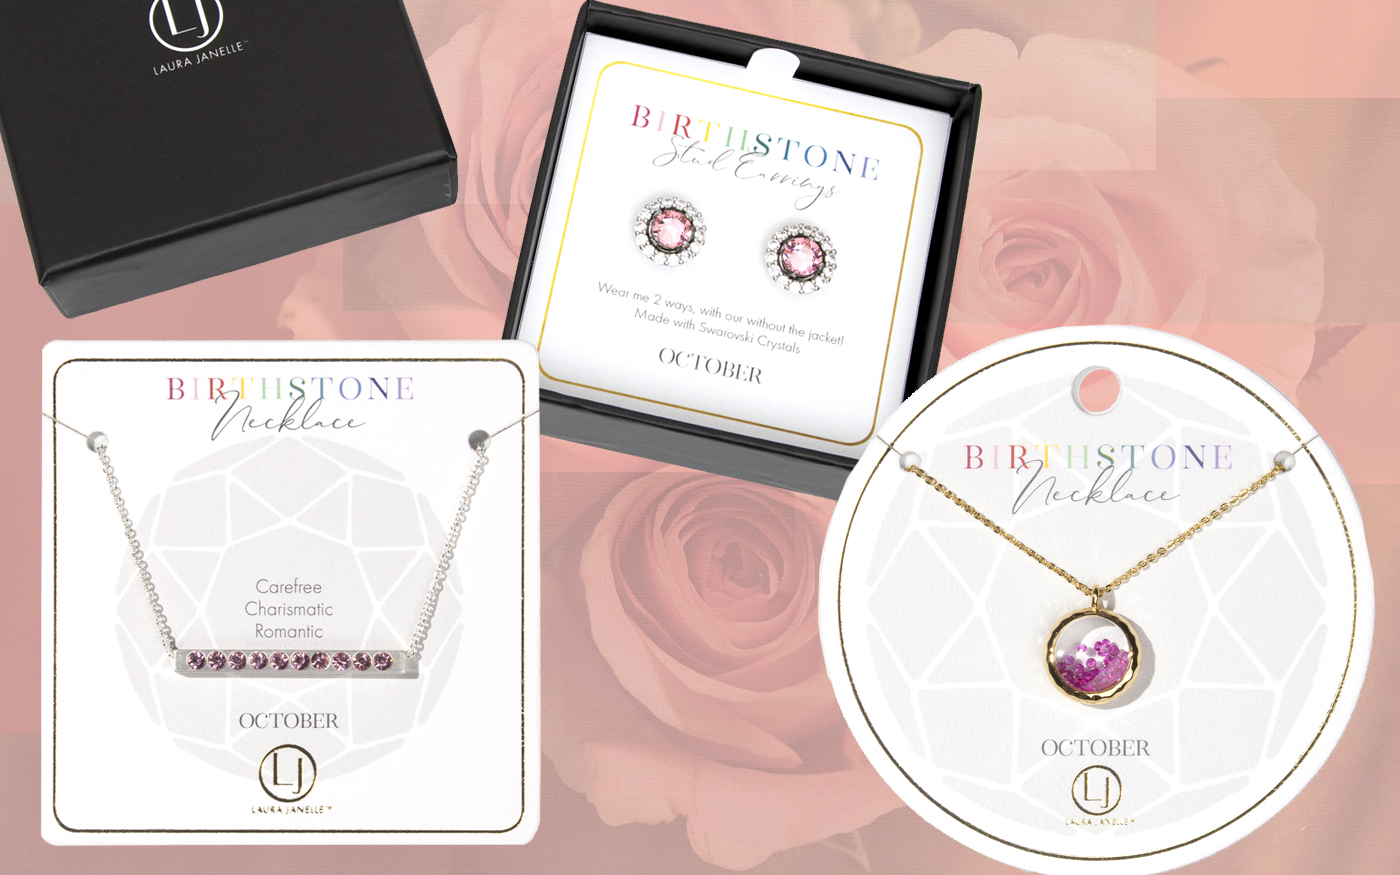 Birthstone Jewelry for Bridesmaids Gifts Under 20